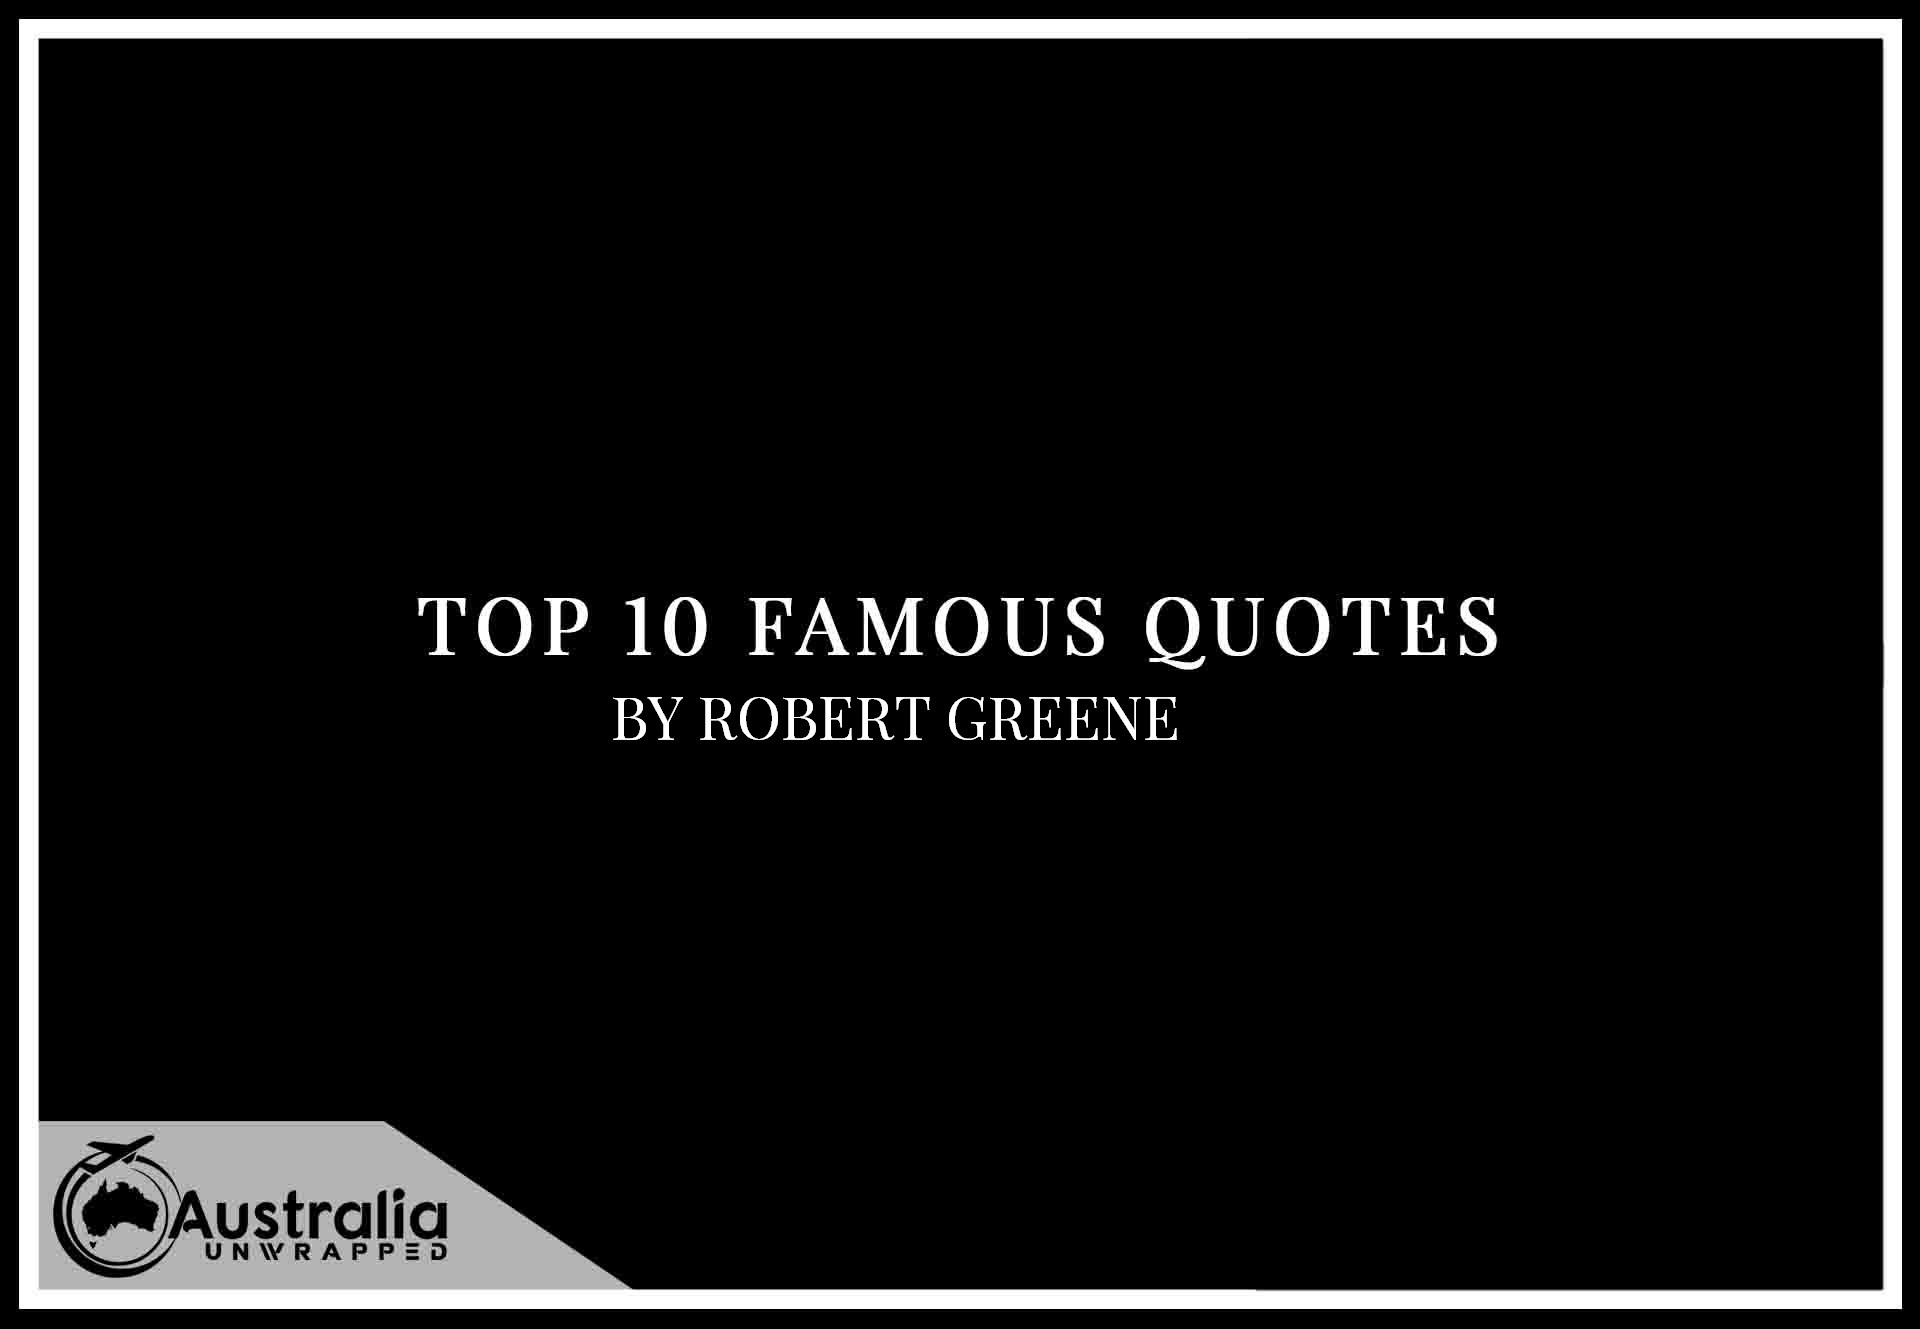 Top 10 Famous Quotes by Author Robert Greene